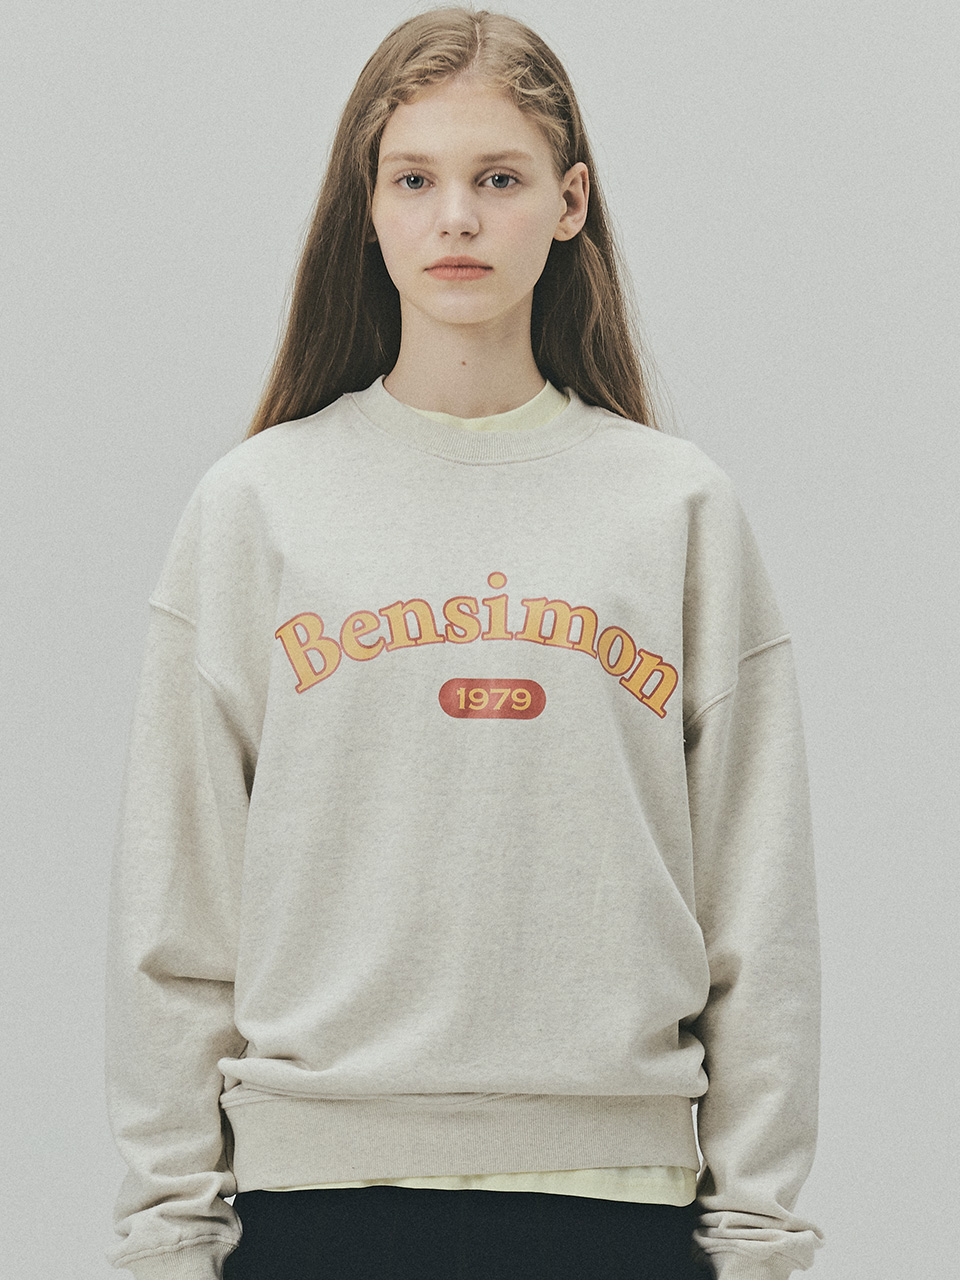 BENSIMON 1979 HERITAGE SWEAT SHIRT - OATMEAL